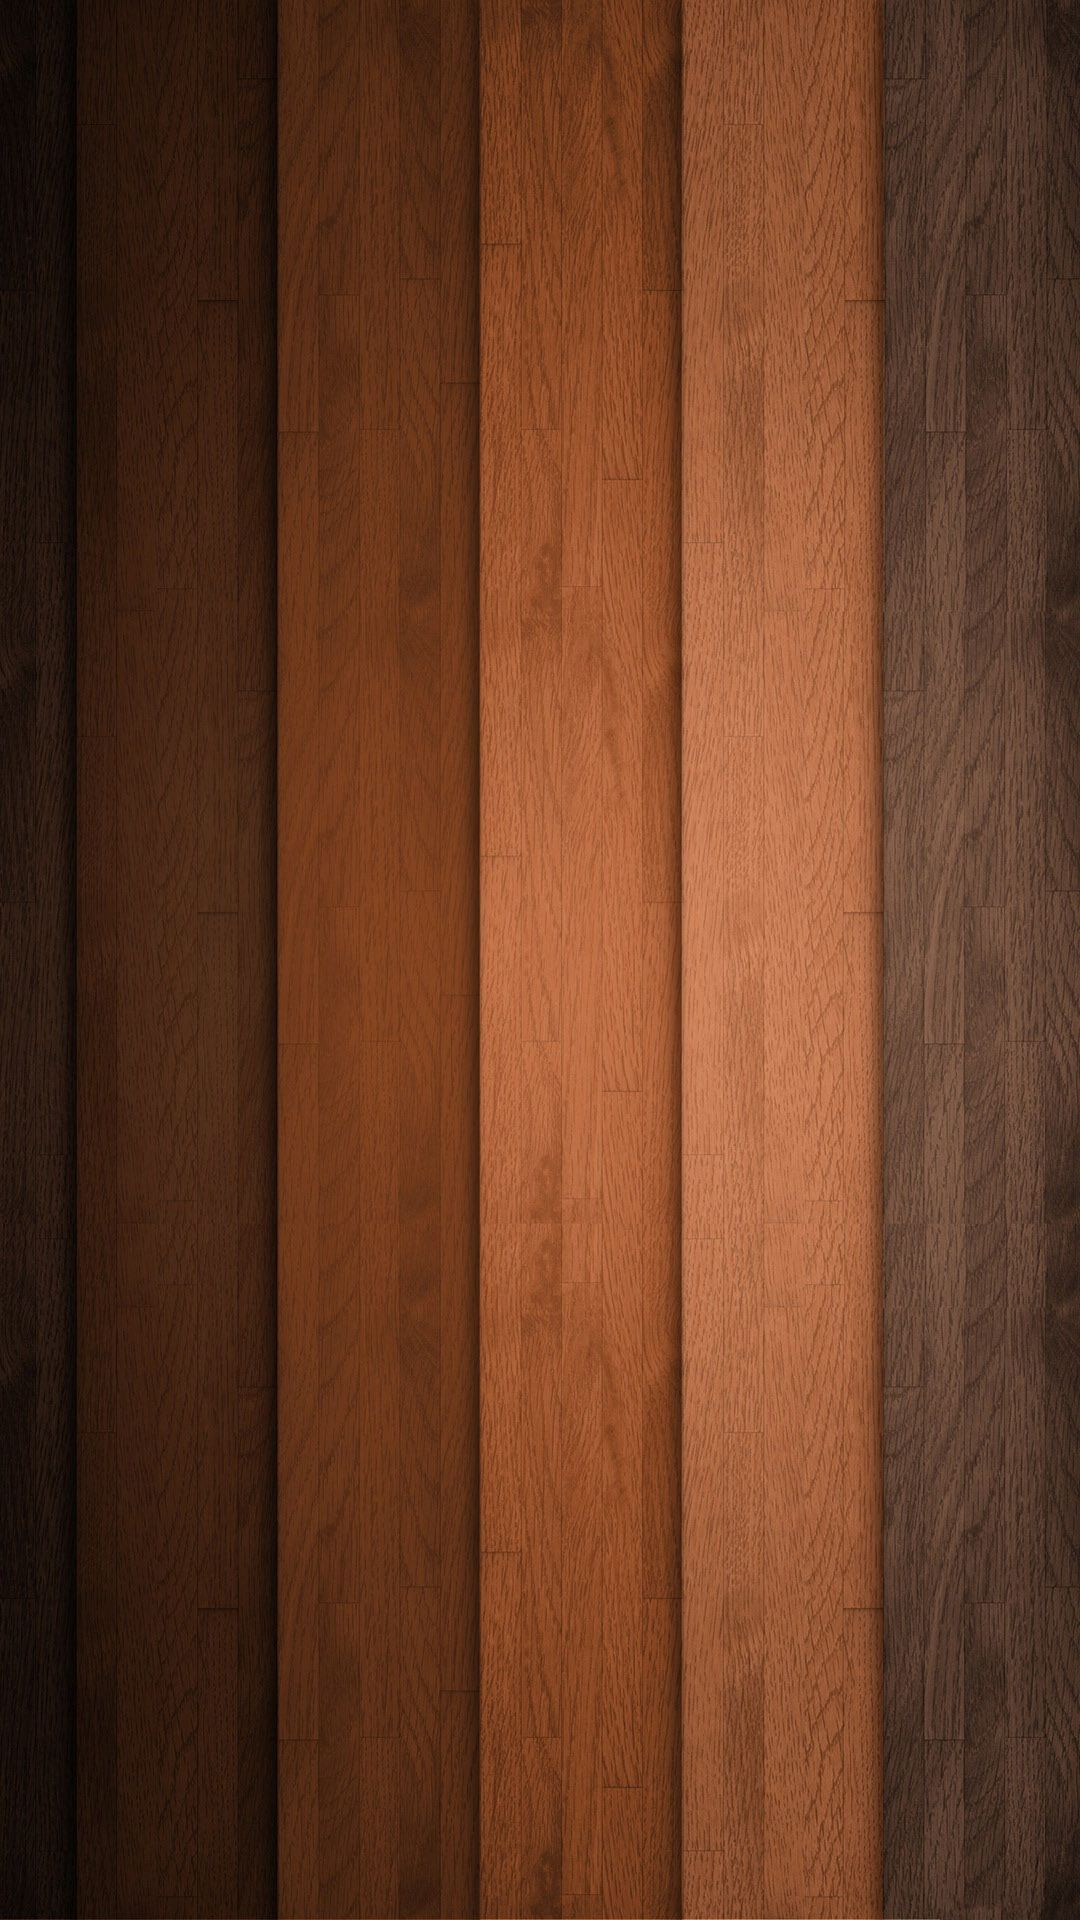 Wood Iphone Wallpapers Top Free Wood Iphone Backgrounds Wallpaperaccess